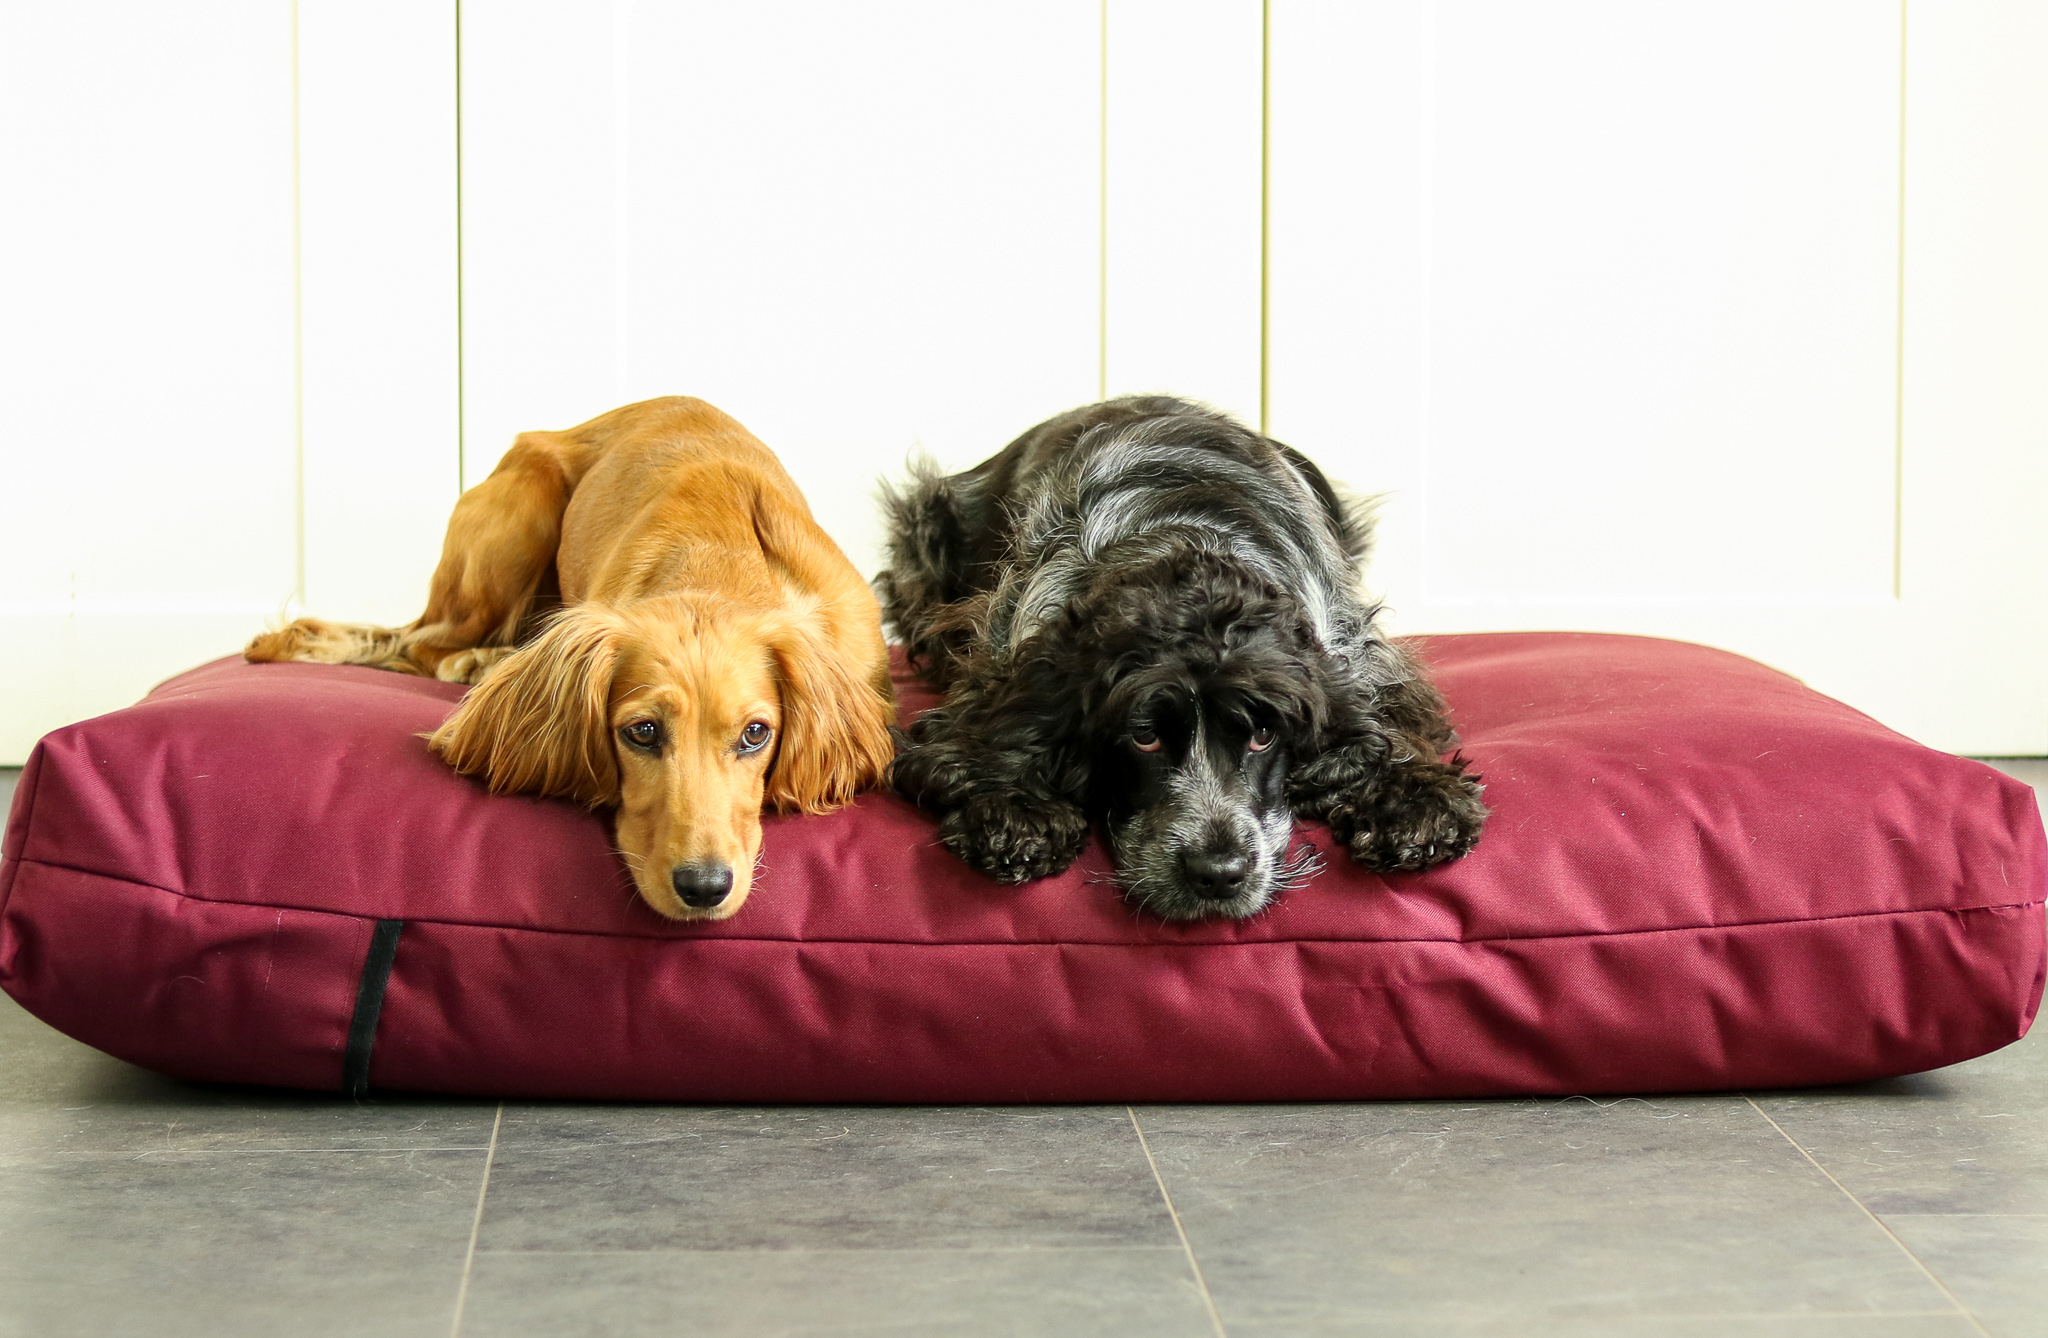 Let Sleeping Dogs Lie – Berkeley Waterproof Orthopaedic Dog Bed Review